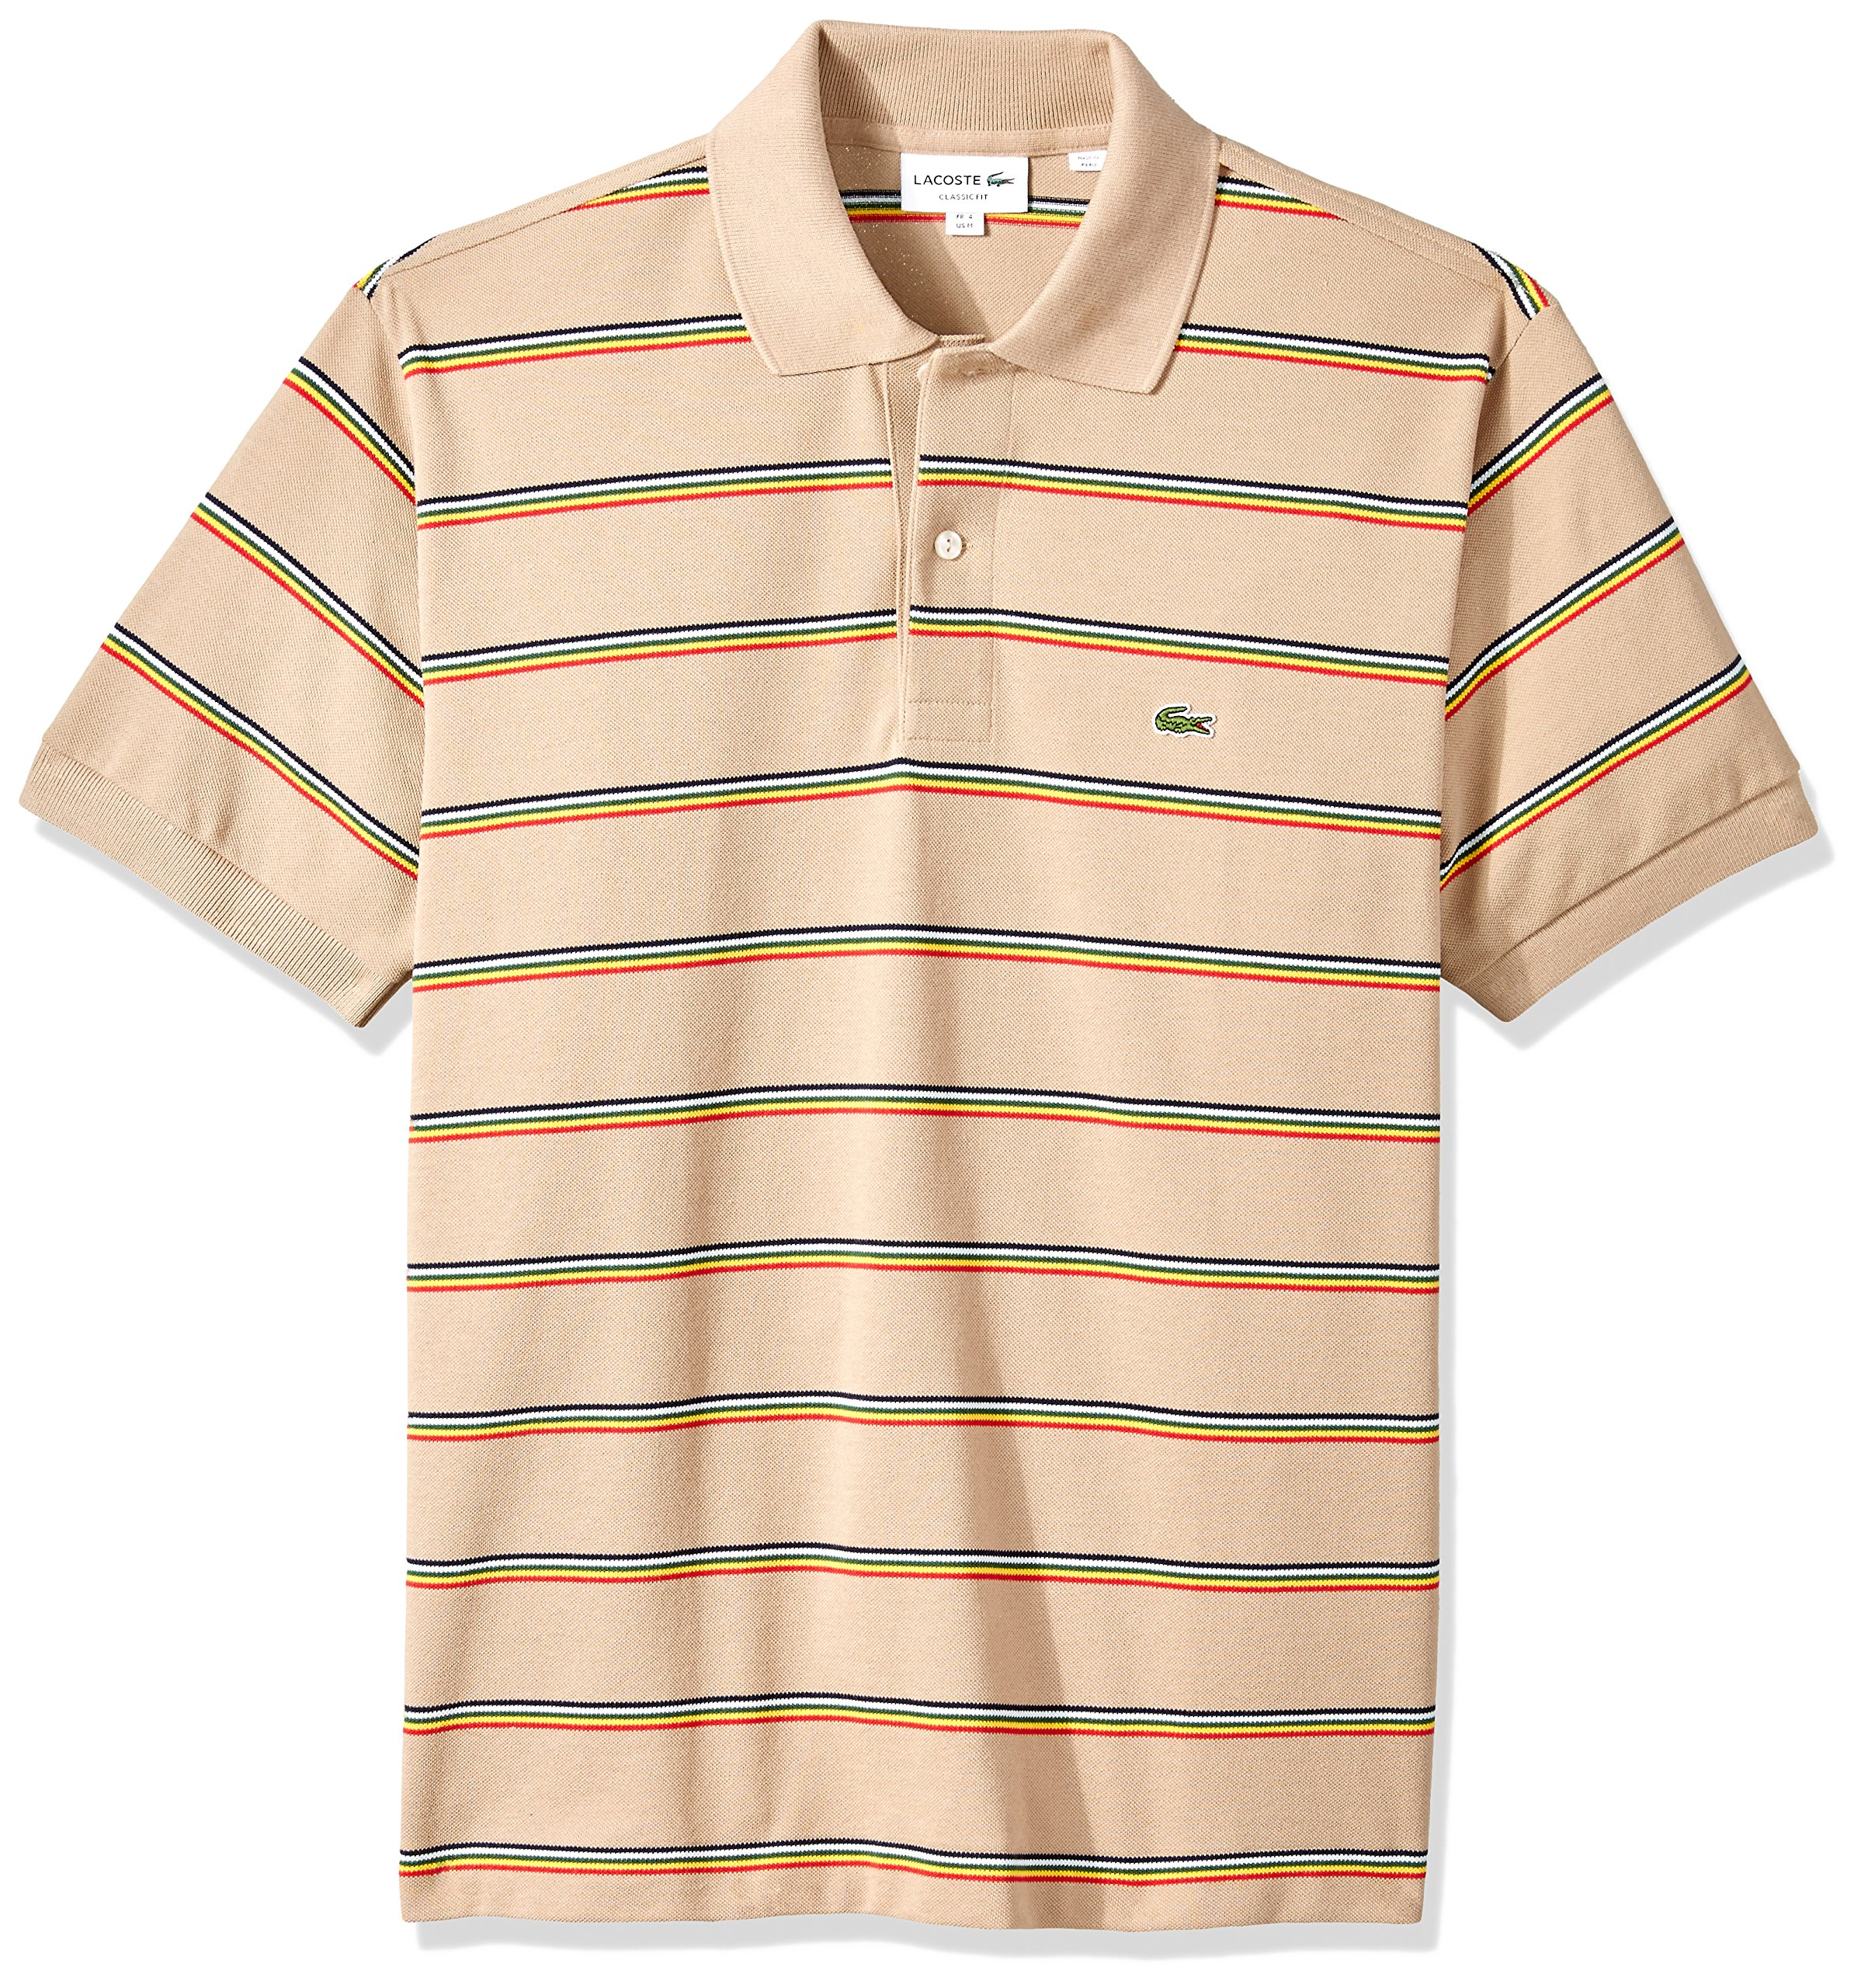 Lacoste Men's Short Sleeve Striped Pique Regular Fit Polo, PH4565, Kraft Beige/Multico, XXL